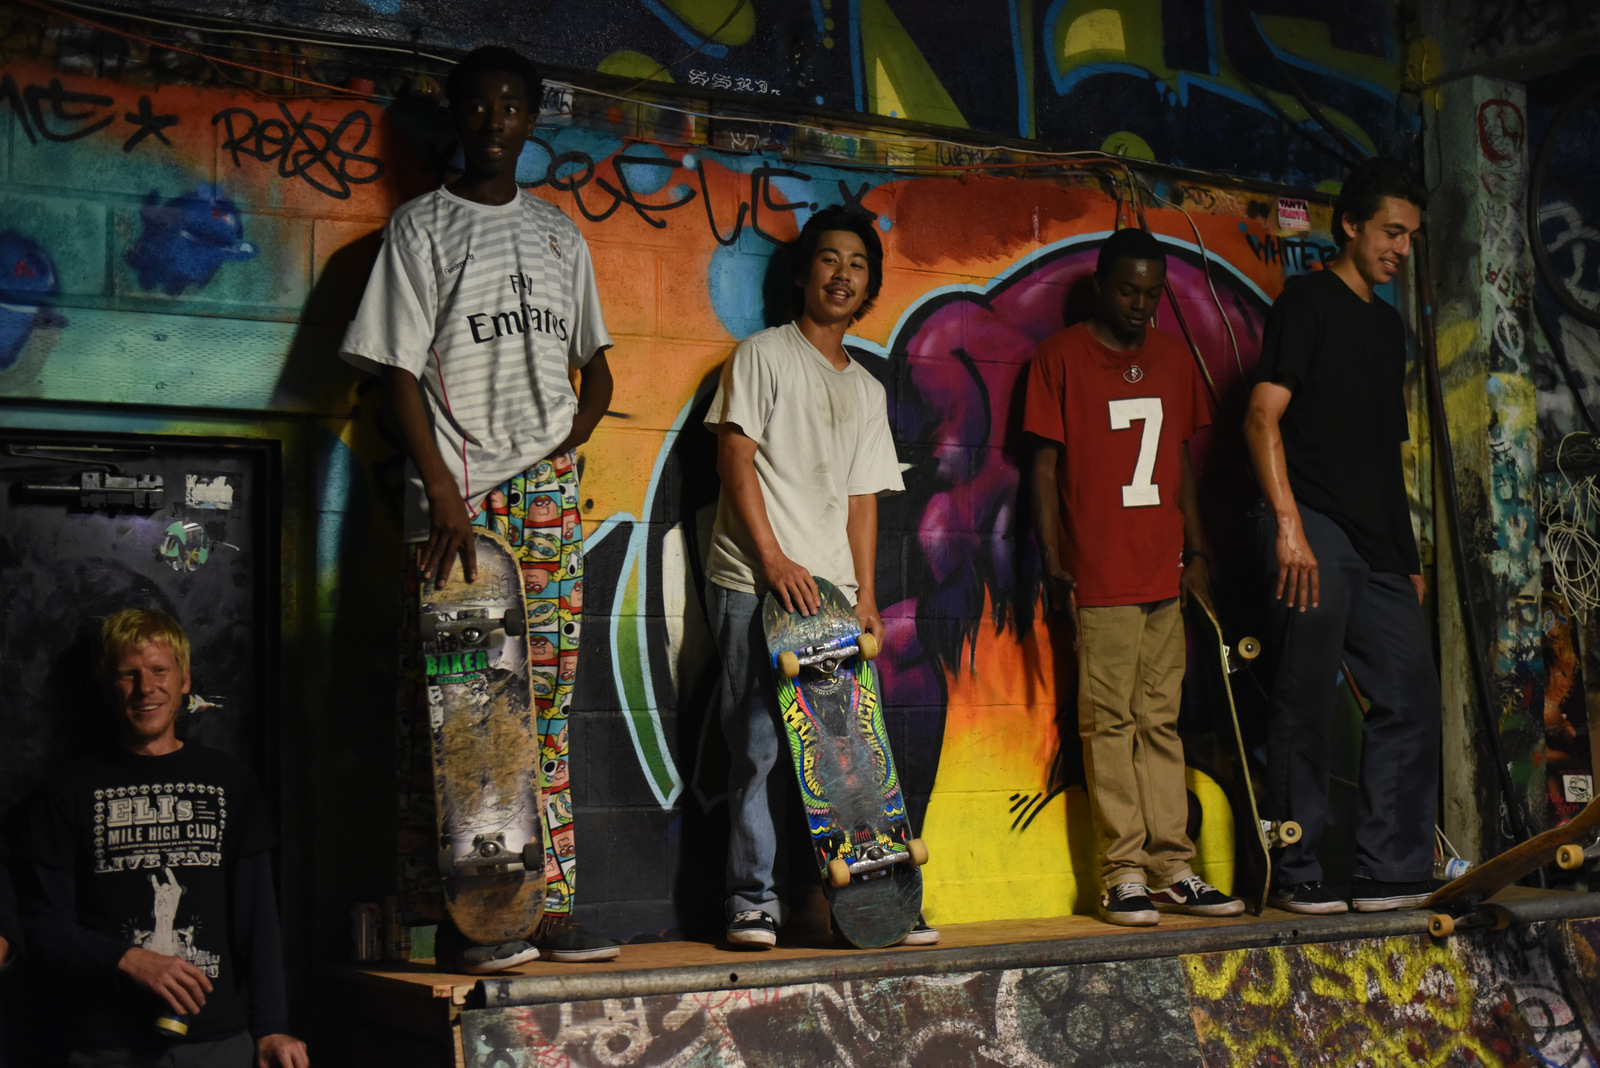 Skateboarders, Punk Bands Show Off Their Tricks at 'Ramp Jam'